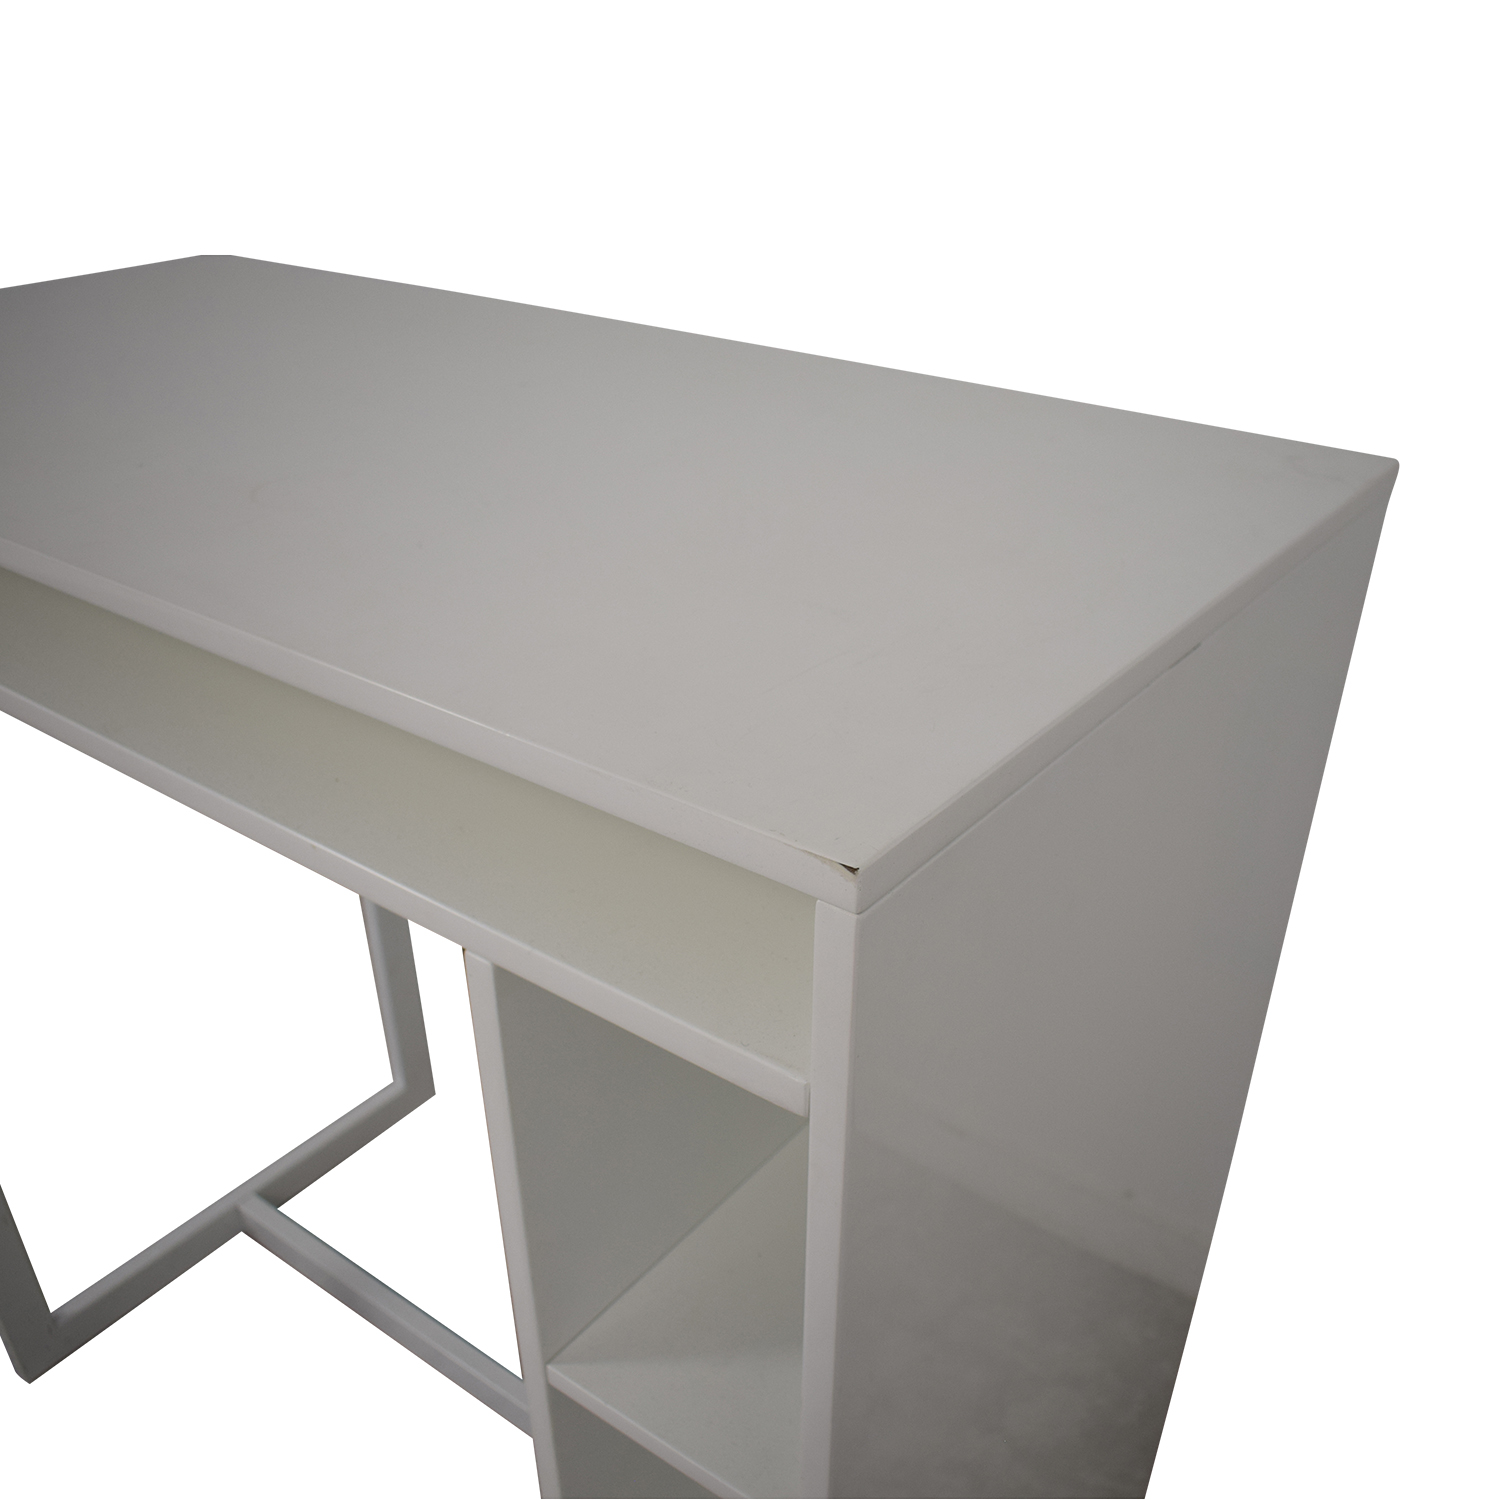 CB2 CB2 Public White Counter Dining Table white